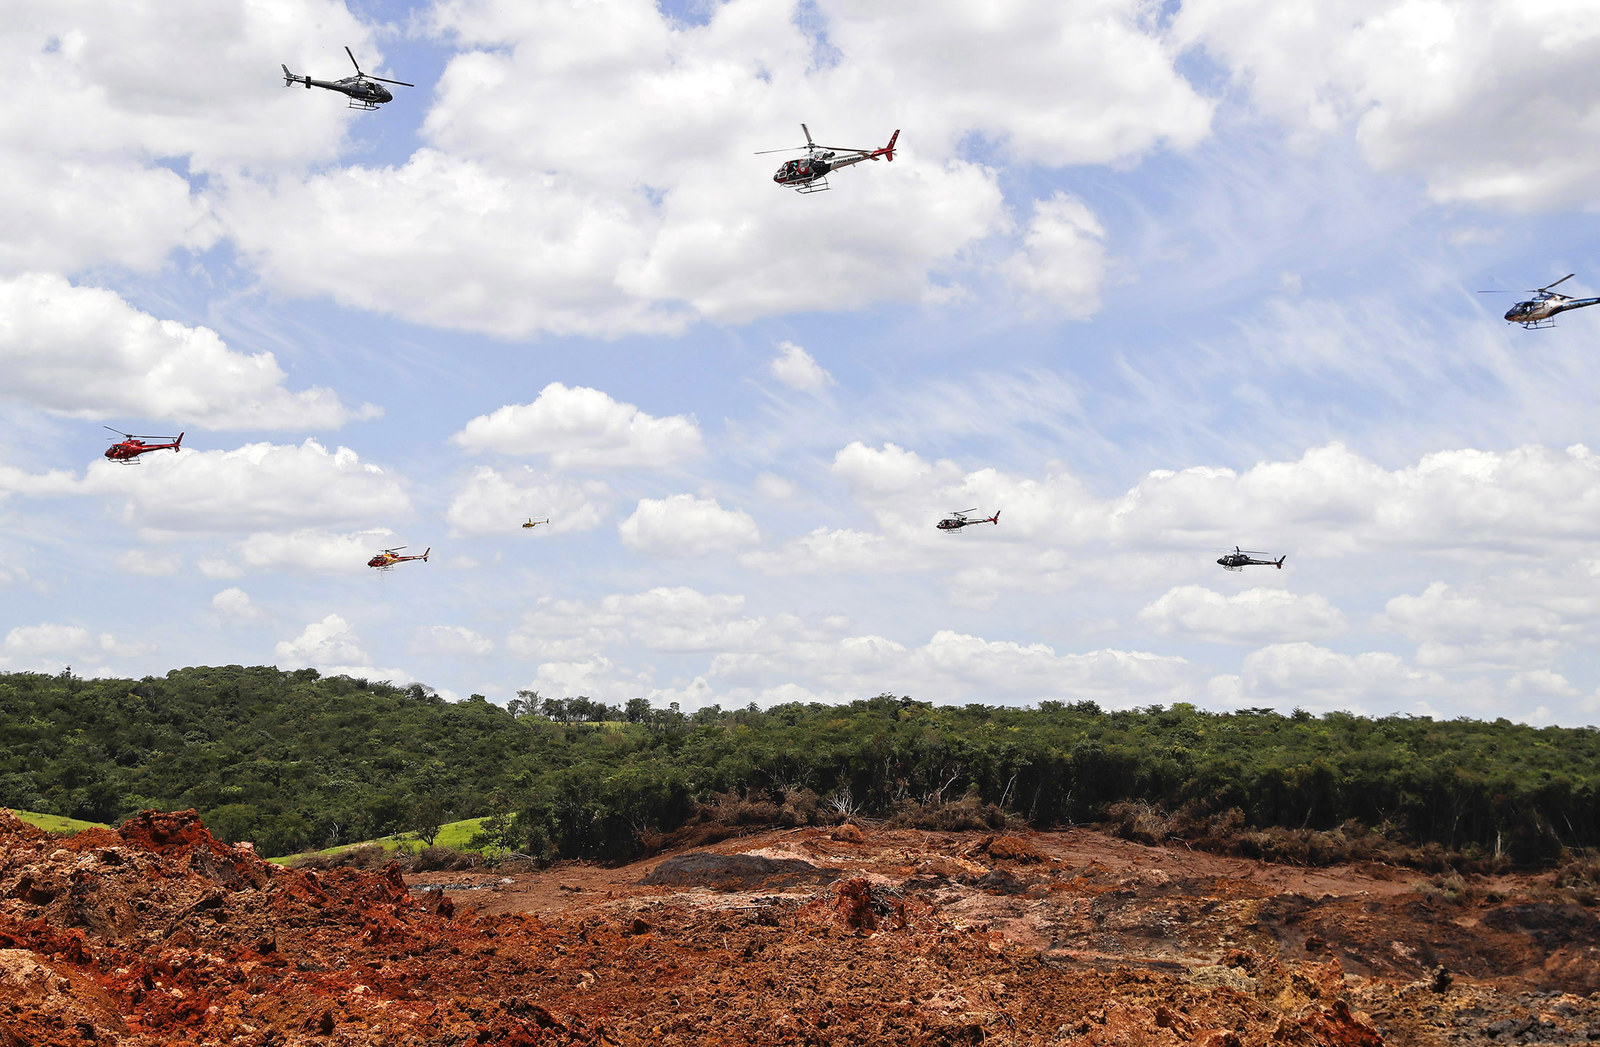 Helicopters hover over an iron ore mining complex to release thousands of flower petals paying homage to the dozens of victims killed and scores of missing after a mining dam collapsed there a week ago, in Brumadinho, Brazil, on Feb. 1.